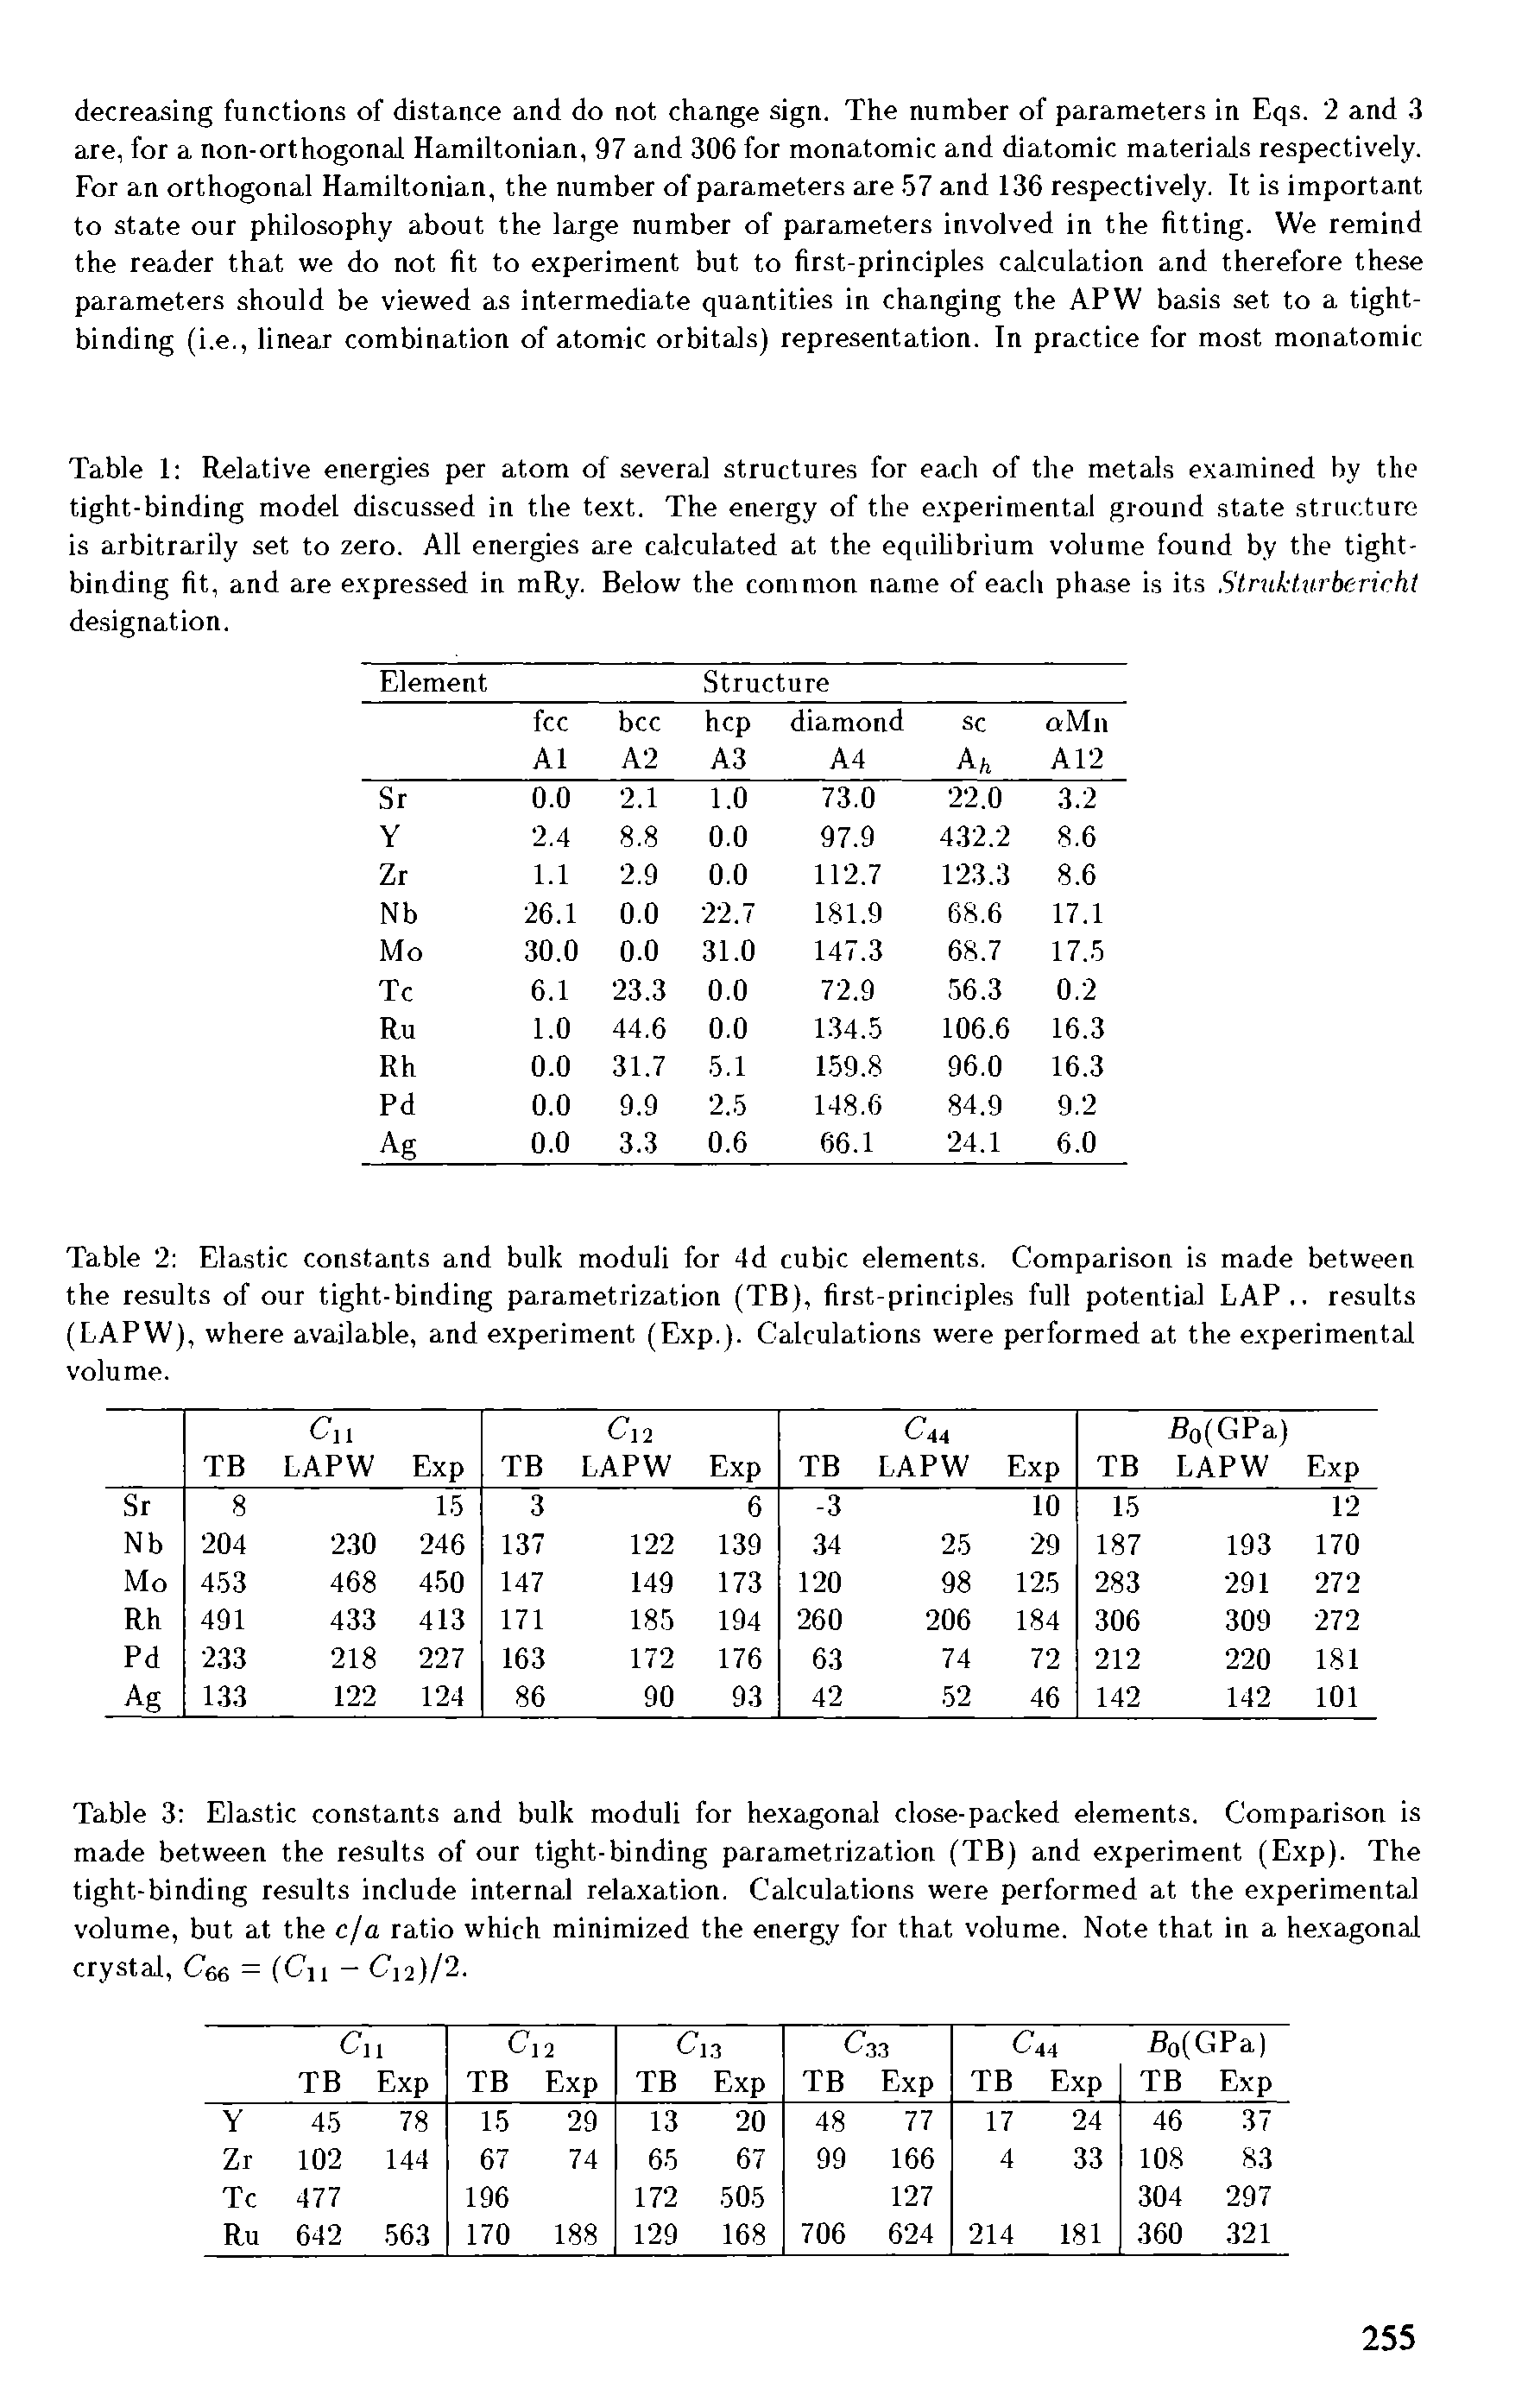 Table 3 Elastic constants and bulk moduli for hexagonal close-packed elements. Comparison is made between the results of our tight-binding parametrization (TB) and experiment (Exp). The tight-binding results include internal relaxation. Calculations were performed at the experimental volume, but at the c/a ratio which minimized the energy for that volume. Note that in a hexagonal crystal, Cee = (Ch - Ci2)/2.